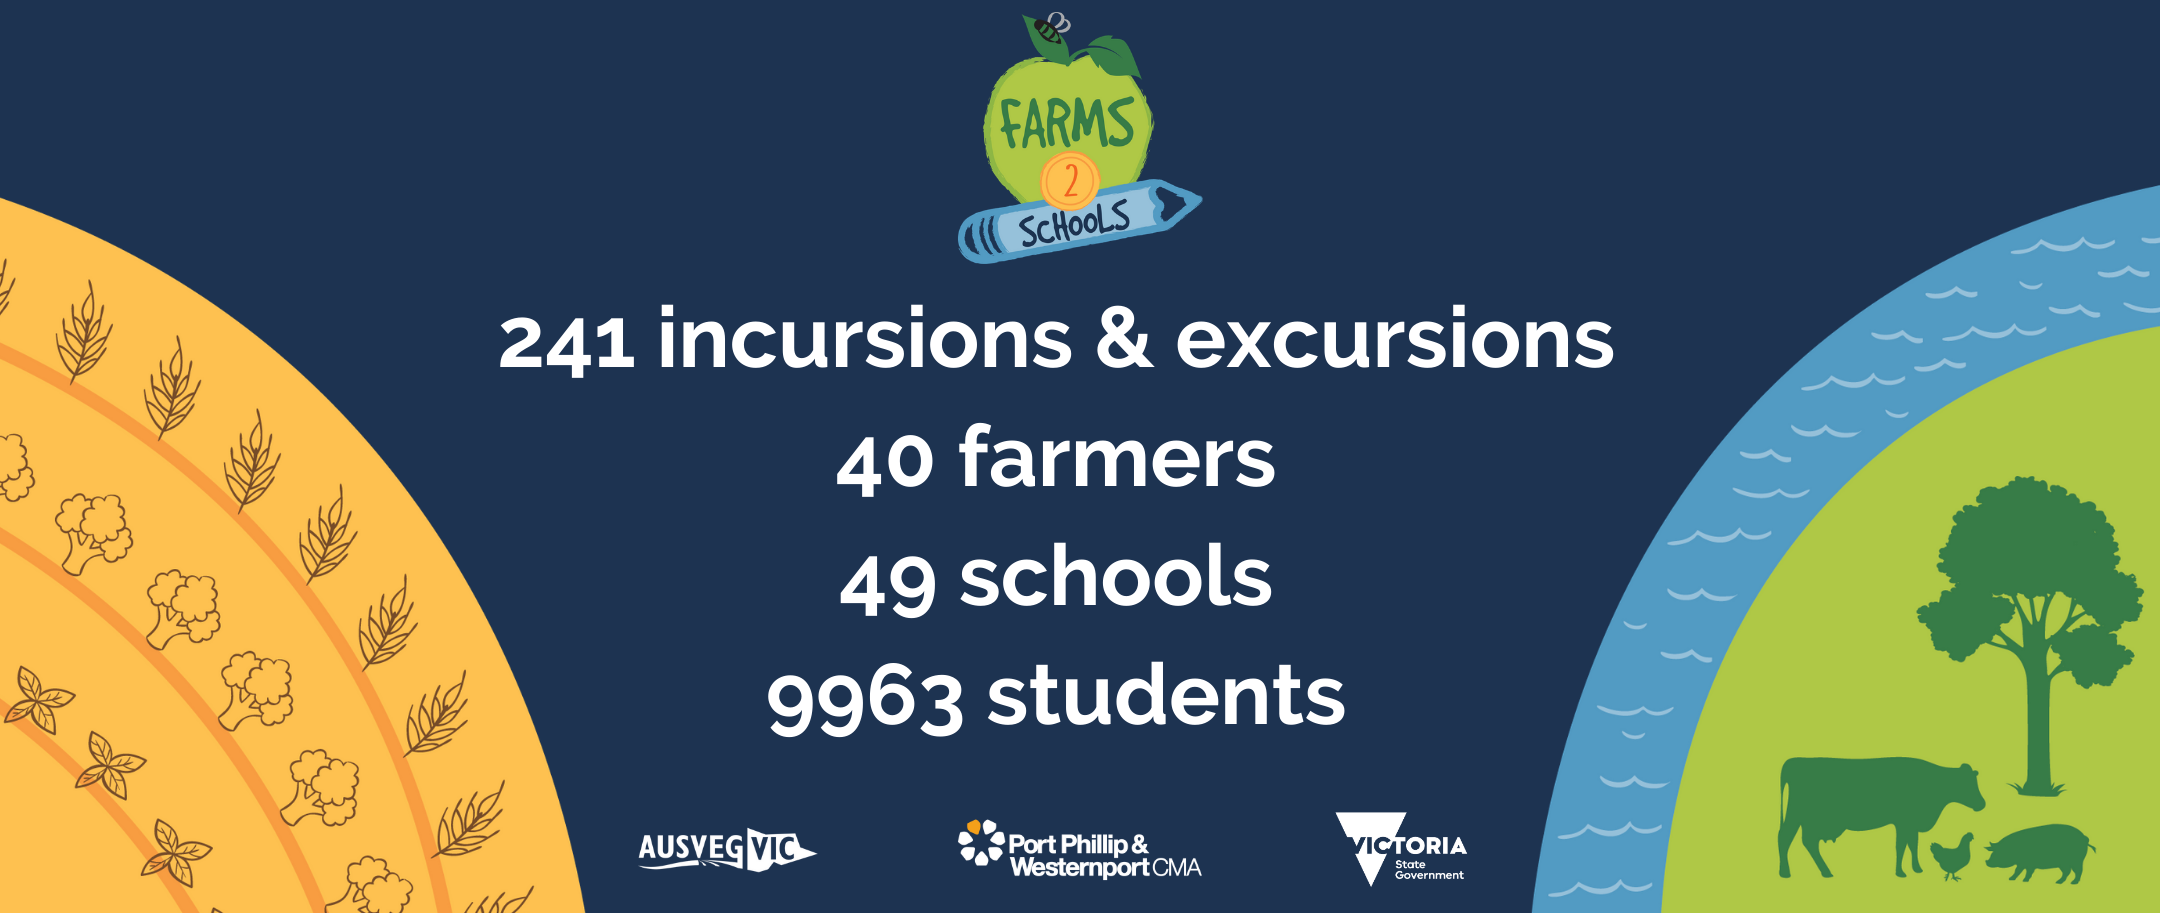 Farms to Schools delivered 241 incursions and excursions, with 40 farmers, 49 schools and 9963 students participating.